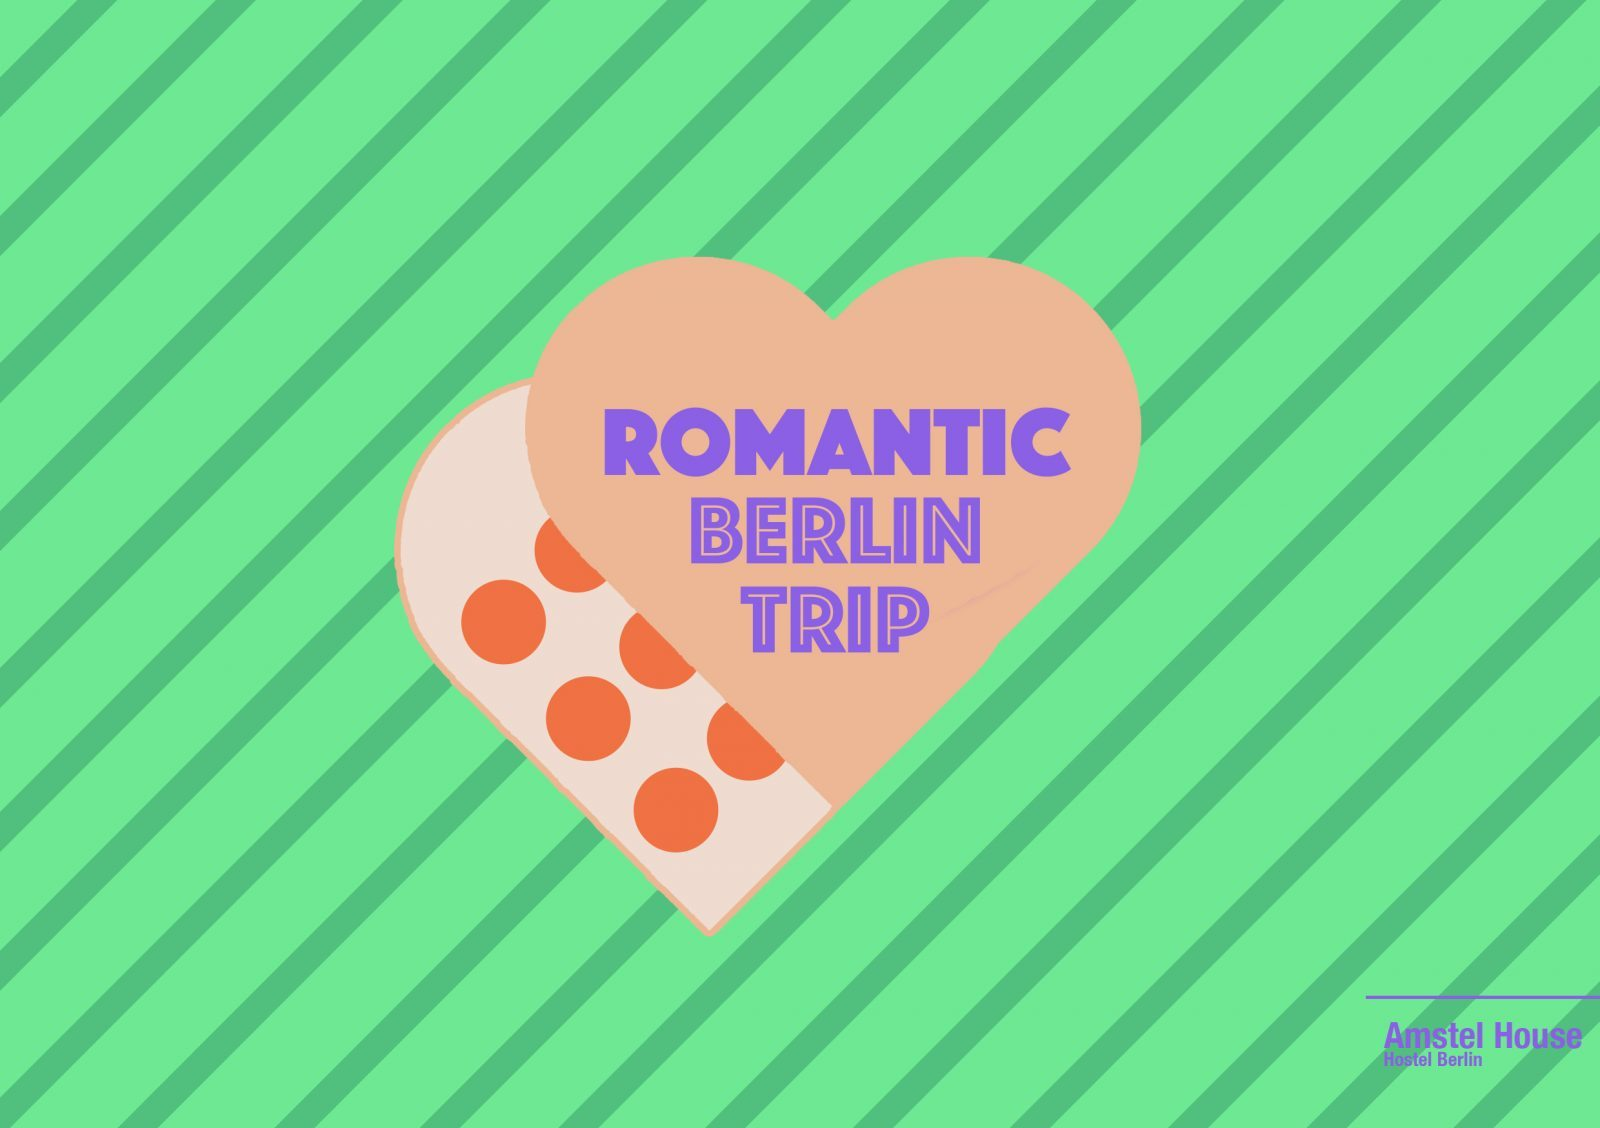 ROMANTIC BERLIN TRIP - 10 best romantic things to do in Berlin